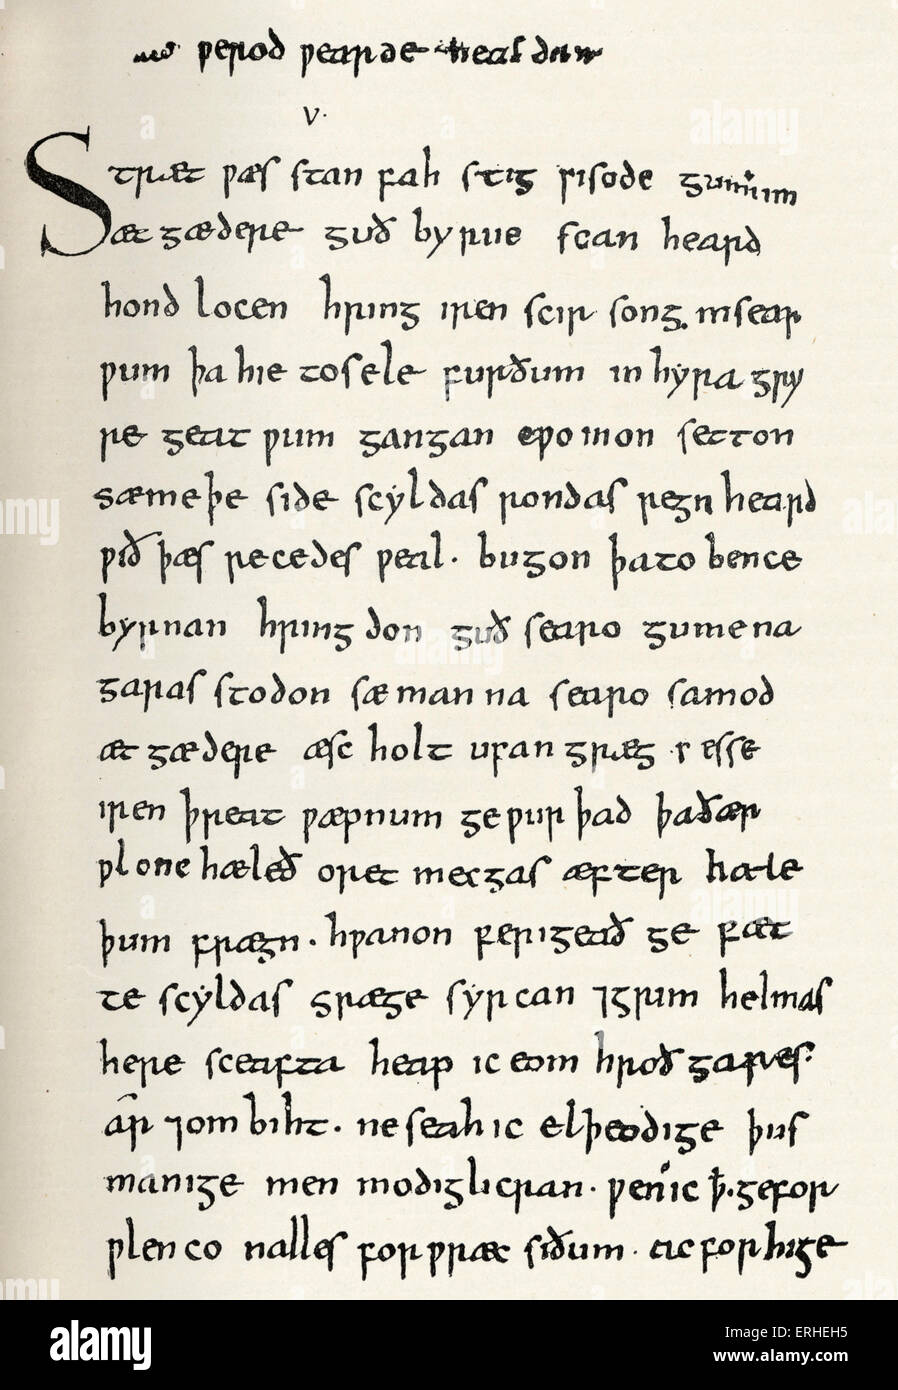 Beowulf - page from manuscript of Beowulf. c 1000 AD  - British Museum - Stock Image